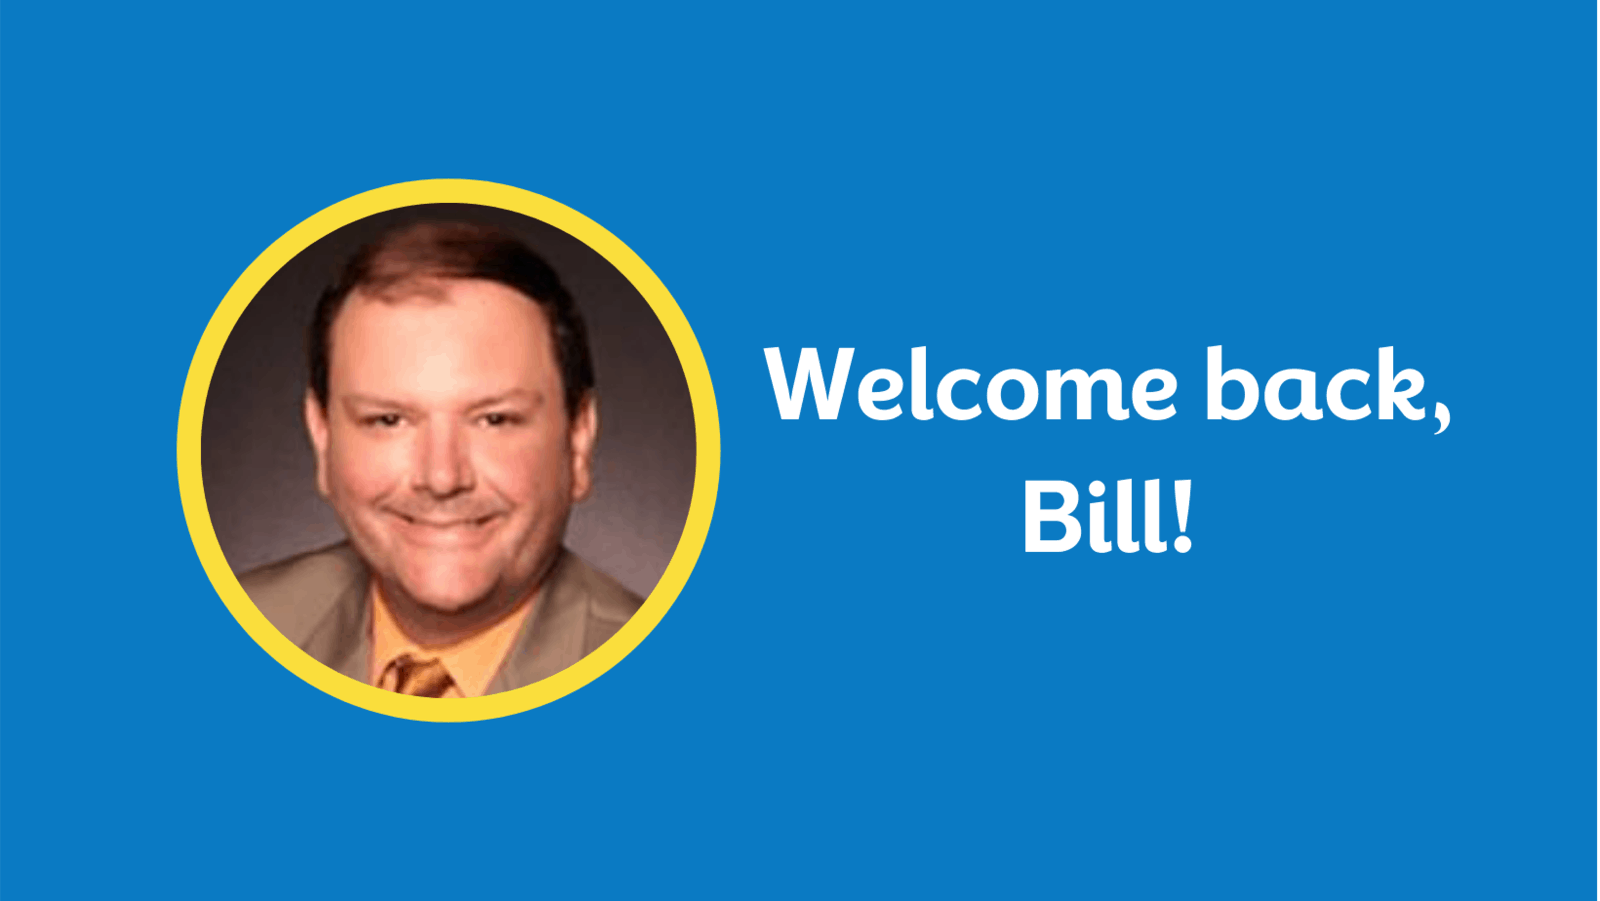 welcome back bill